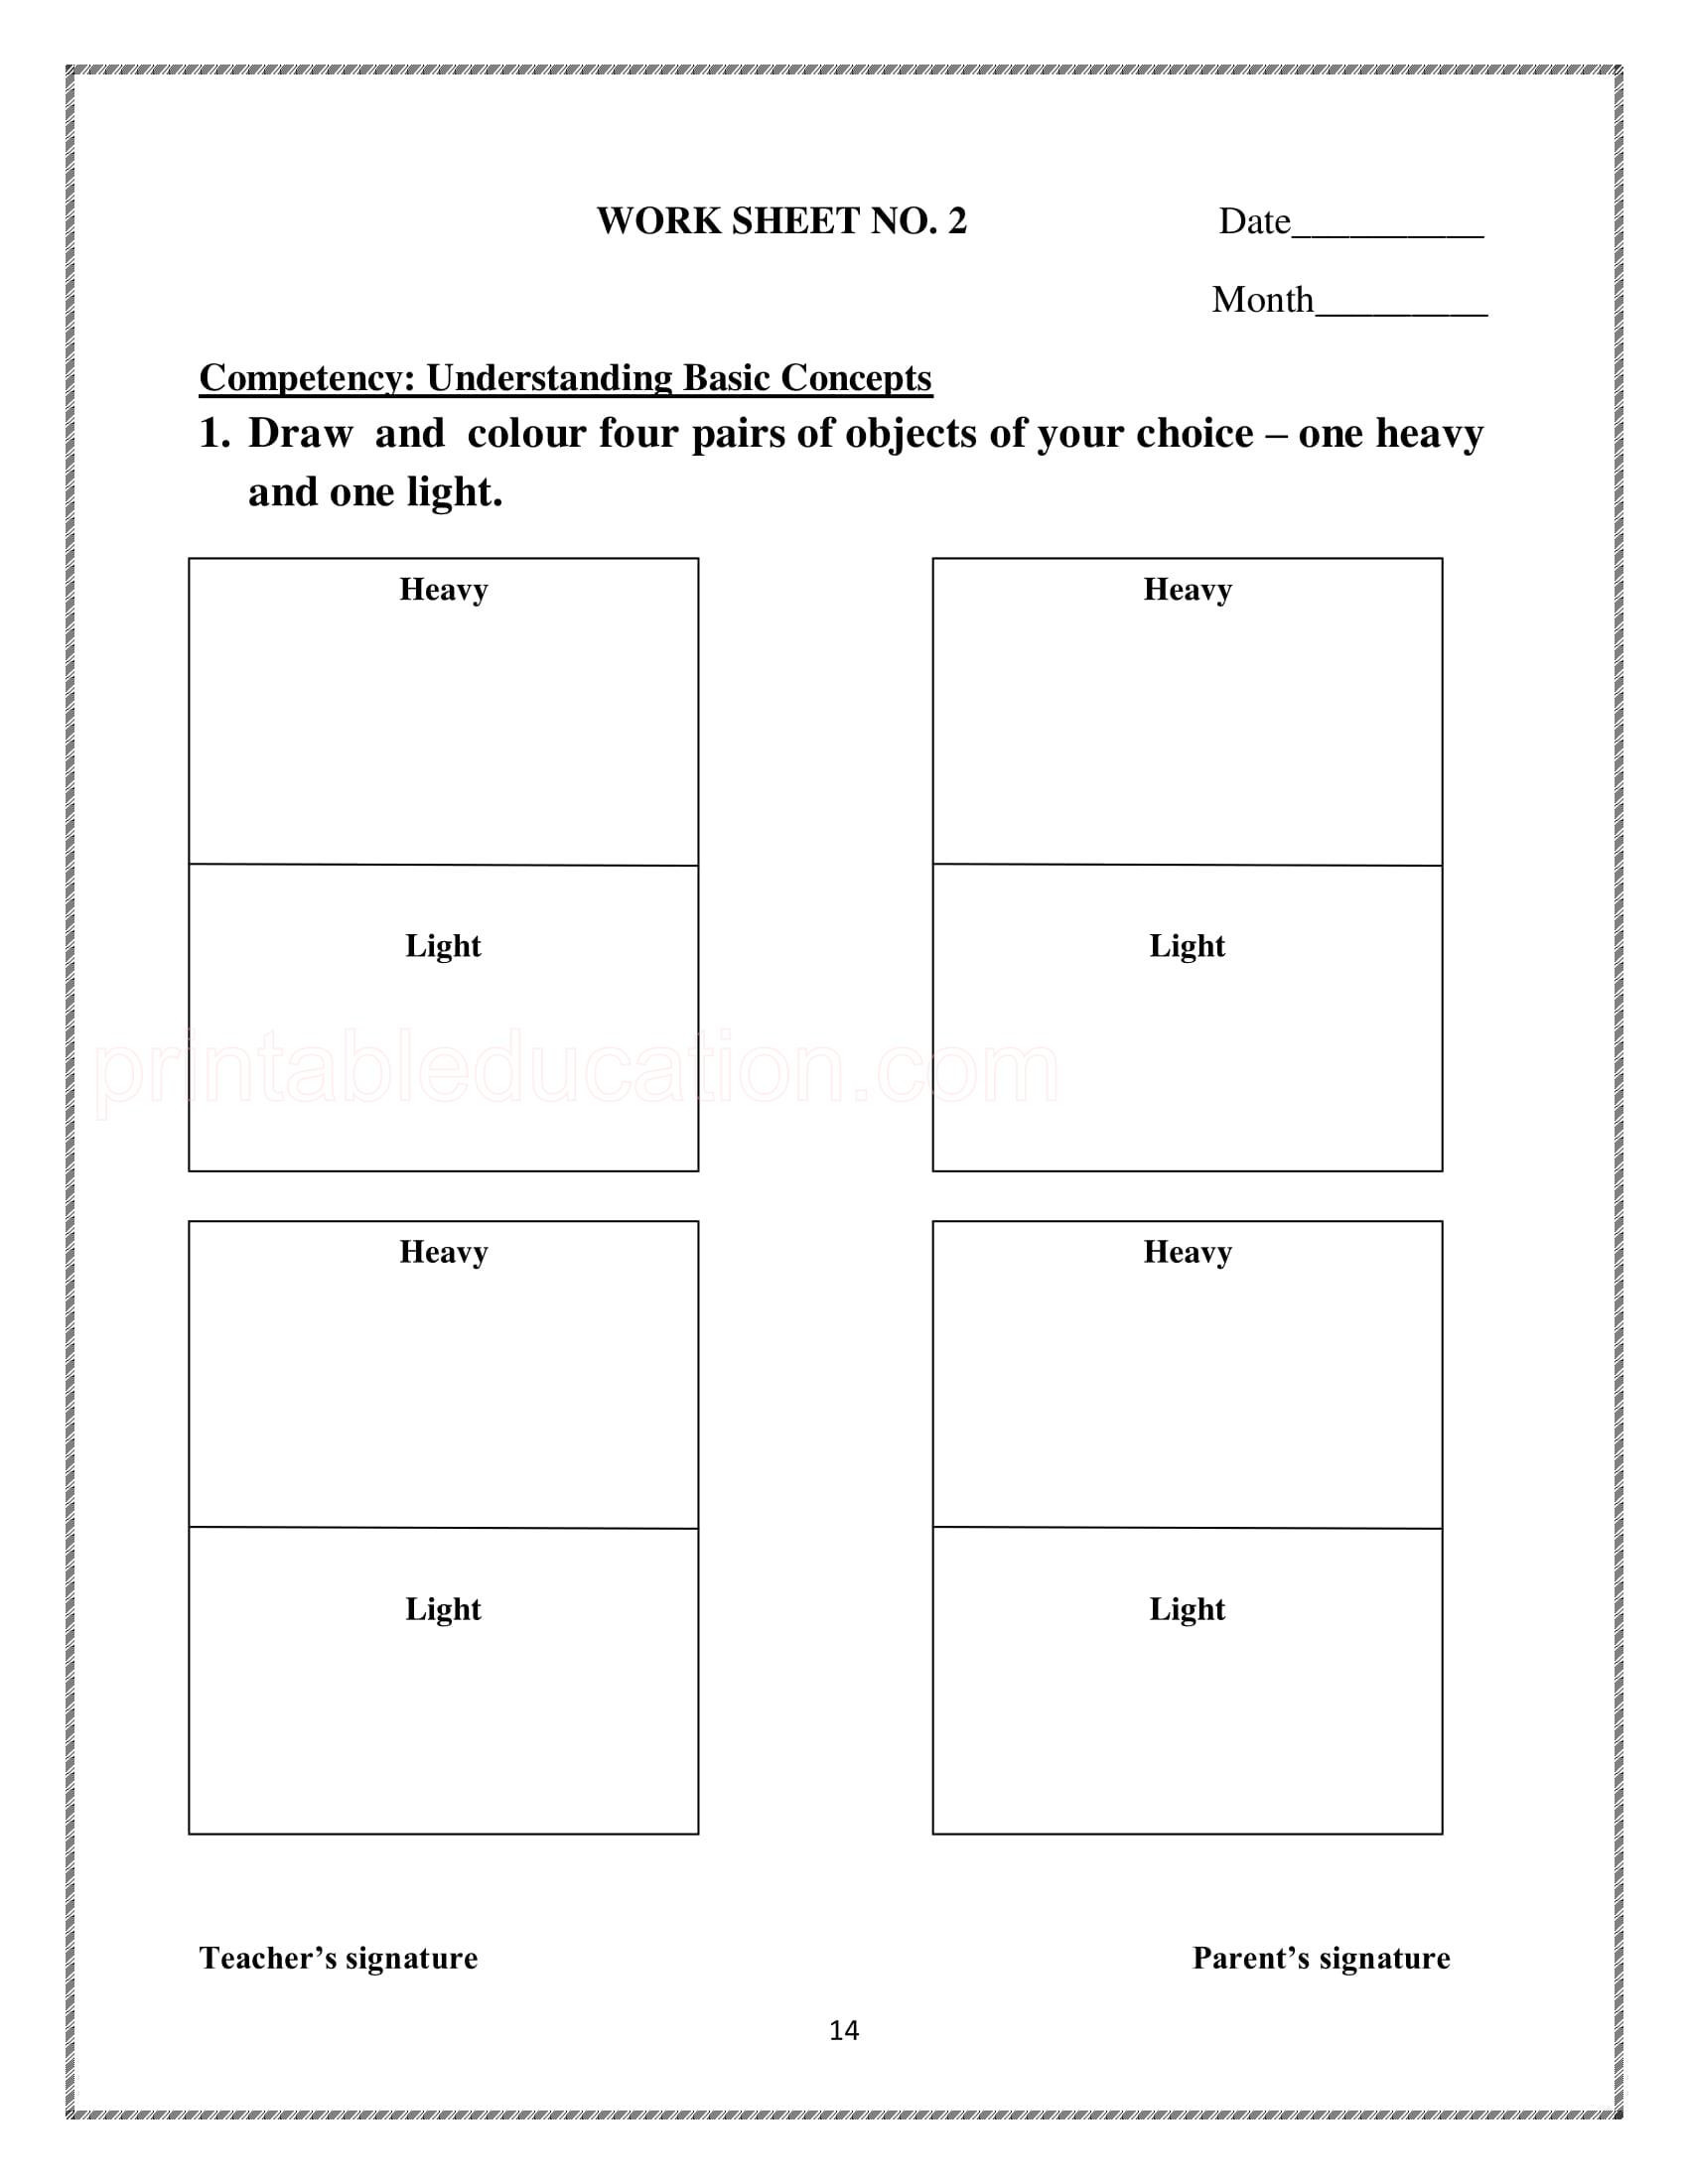 Pictograph Worksheets 3rd Grade Drawing Pictograph Worksheets